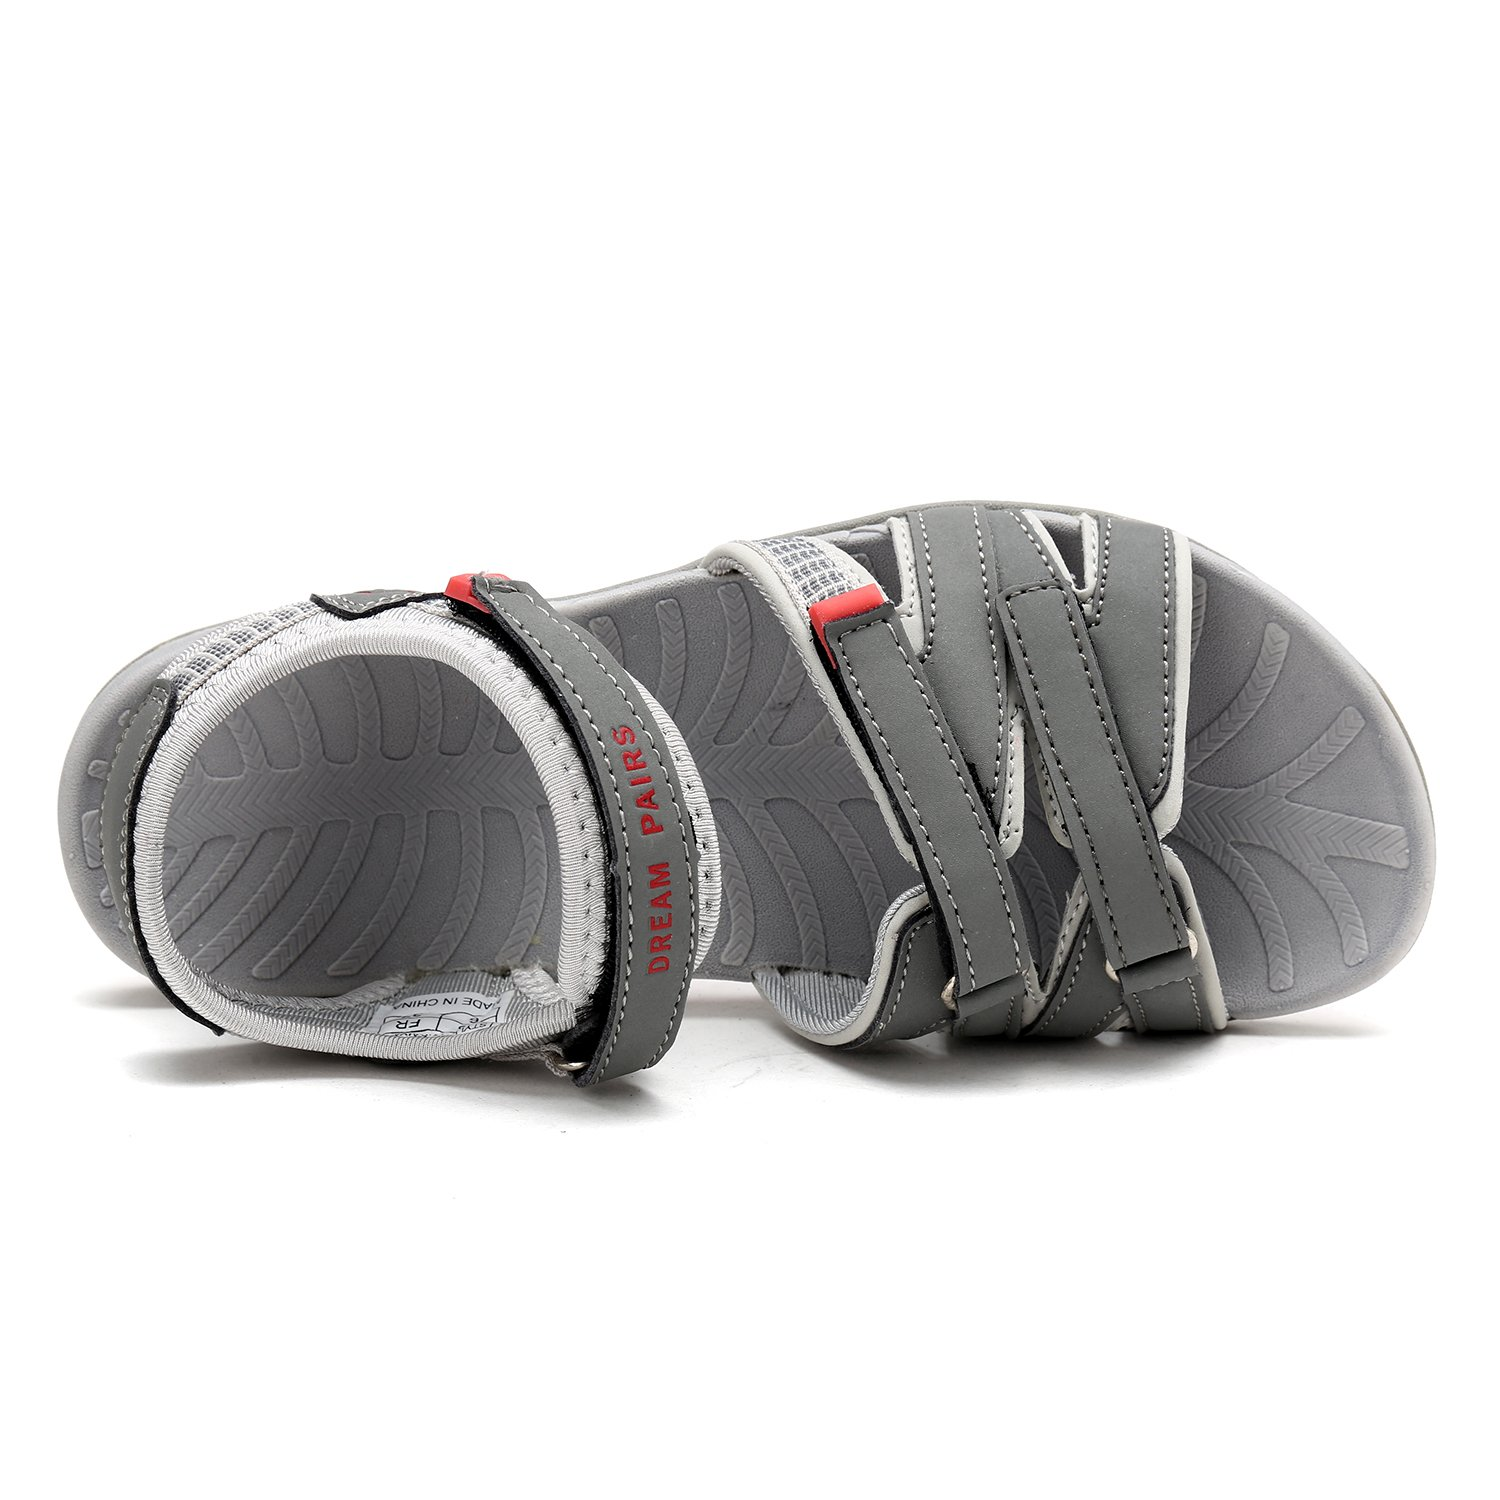 DREAM PAIRS Women's 160912-W Adventurous Summer Outdoor Sandals B07892T6S3 8 B(M) US|Grey/Lt.grey/Coral